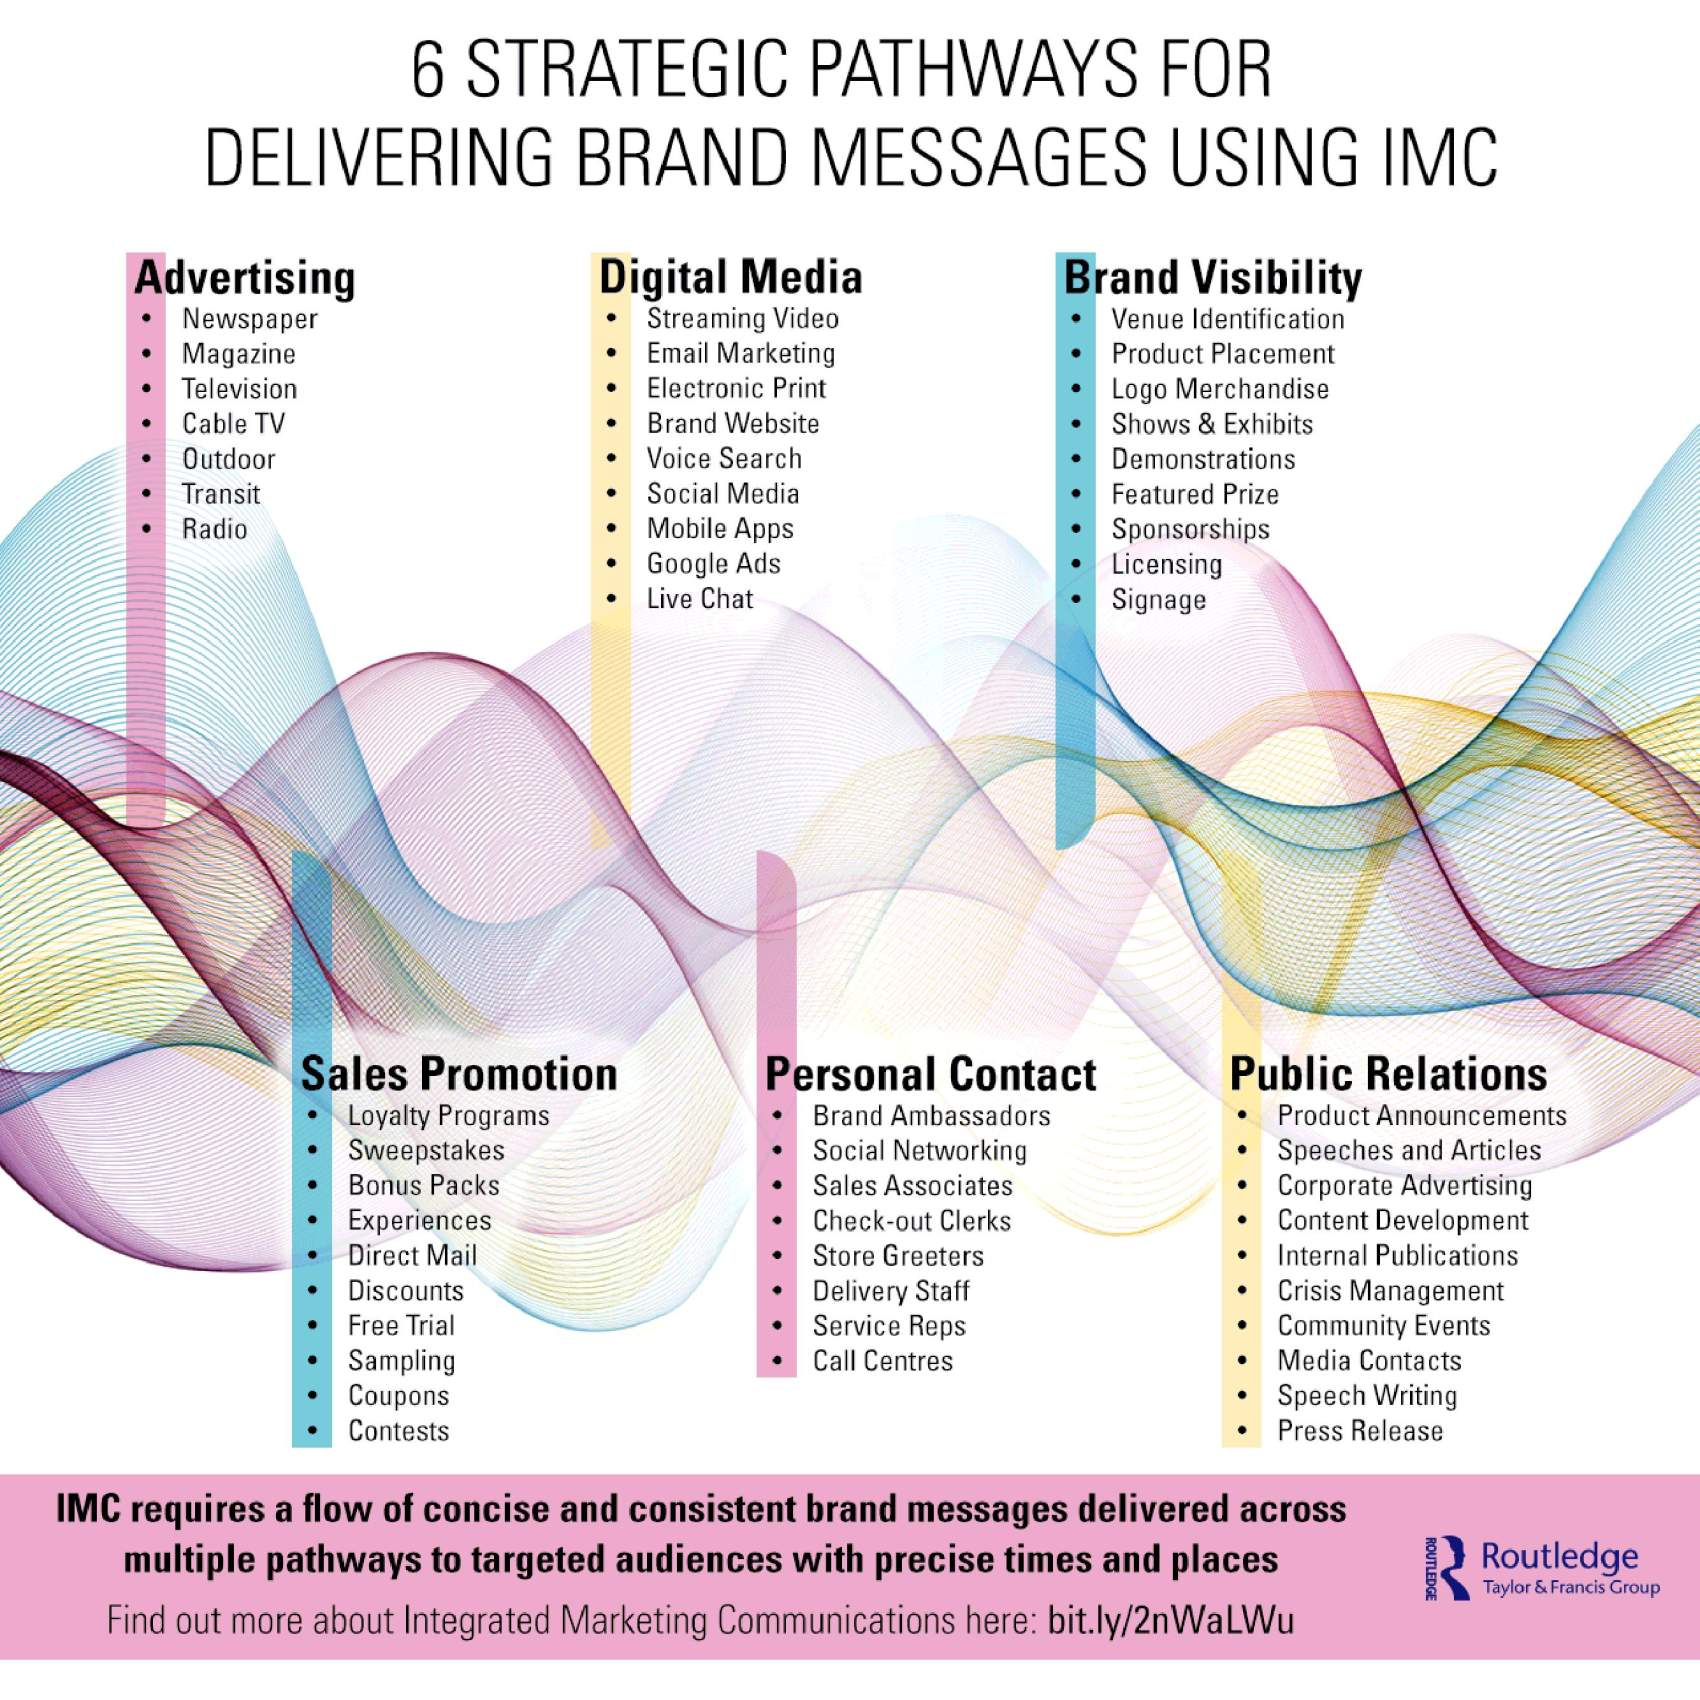 6 Strategic Pathways for Delivering Brand Messaging Using IMC The Integrated Marketing Communication plan is a sequential process that begins with marketing research, evolves into communication strategies, and results in measurable action programs. IMC requires a flow of concise and consistent brand messages delivered across multiple pathways to targeted audiences with precise times and places